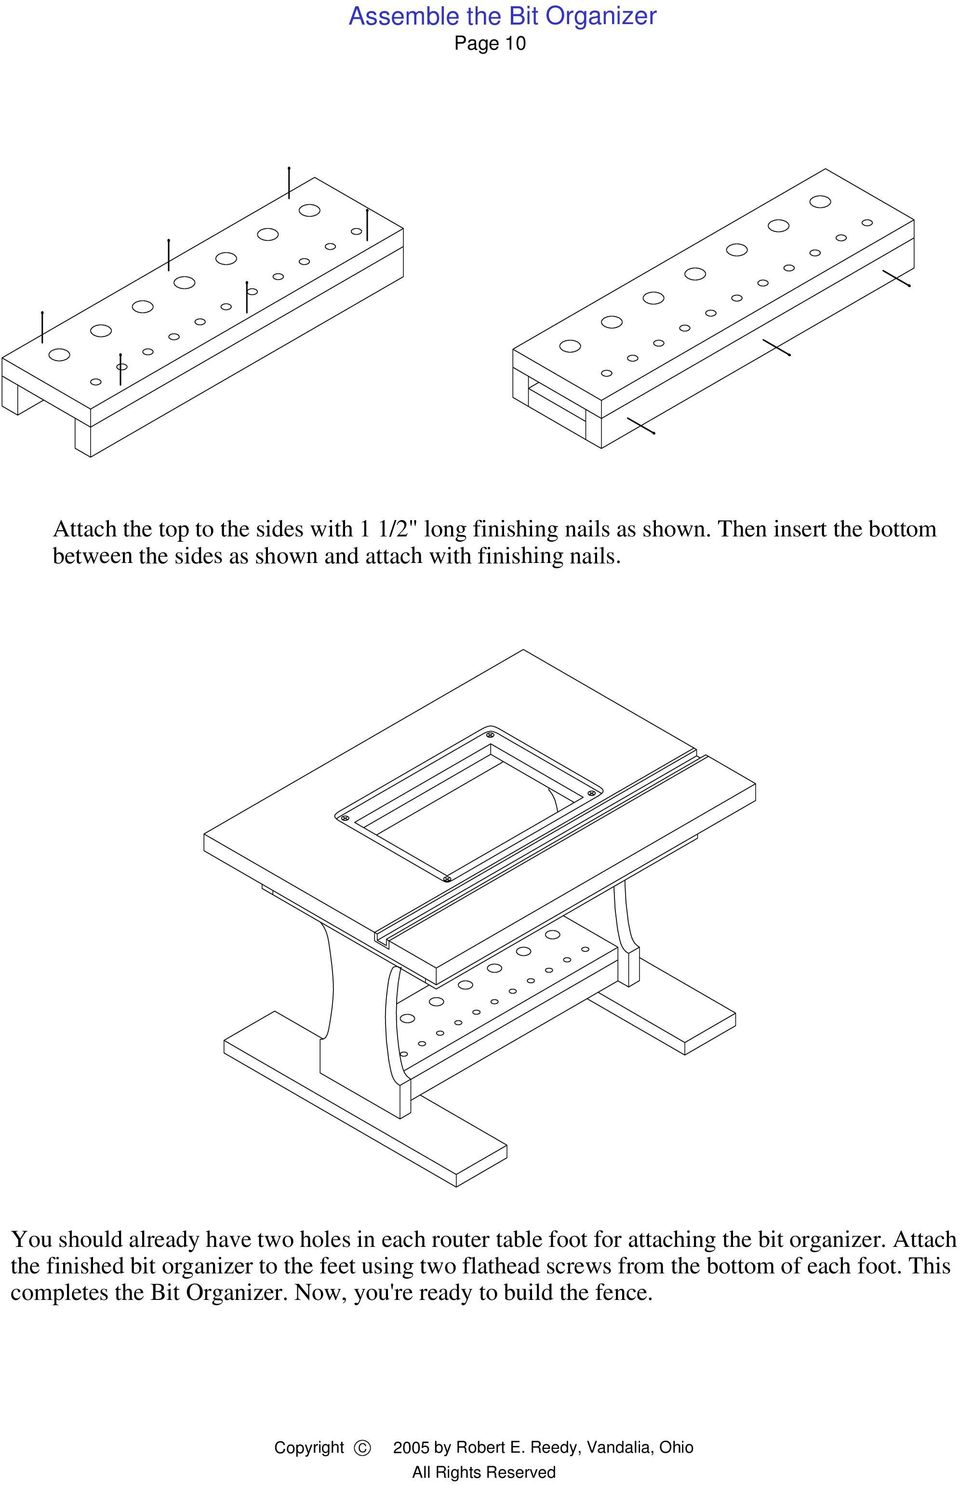 You should already have two holes in each router table foot for attaching the bit organizer.